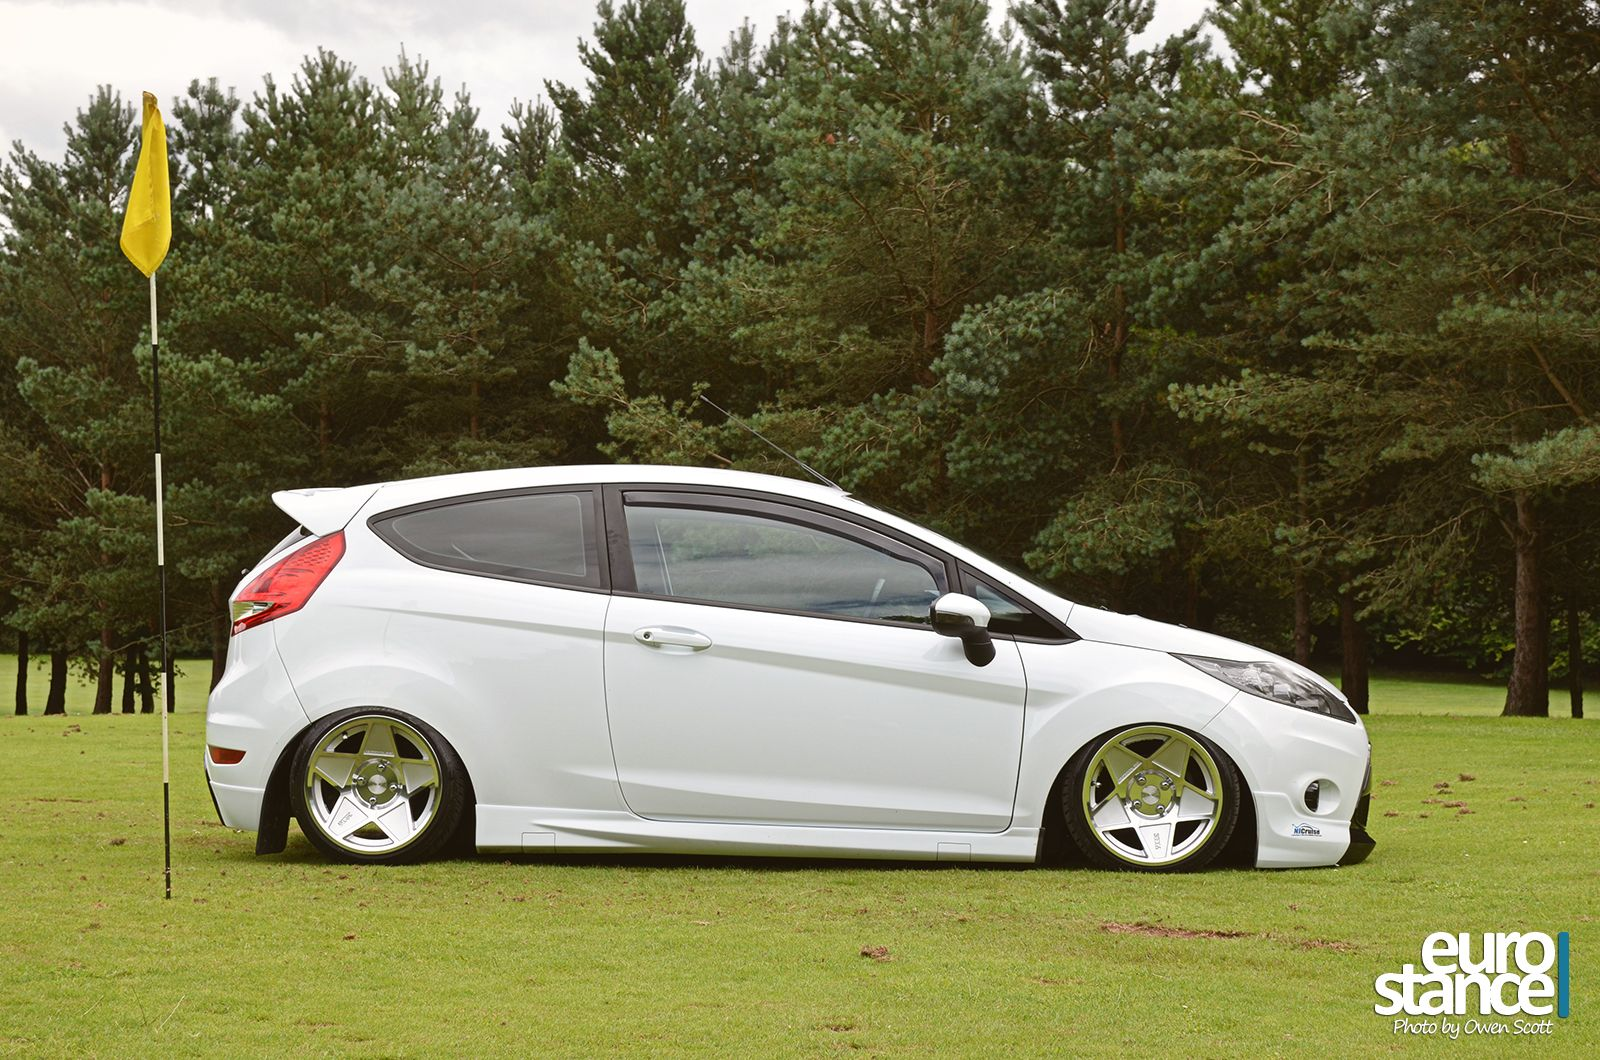 Stephen Chambers Mk7 Ford Fiesta On Hydraulics Stance Ford